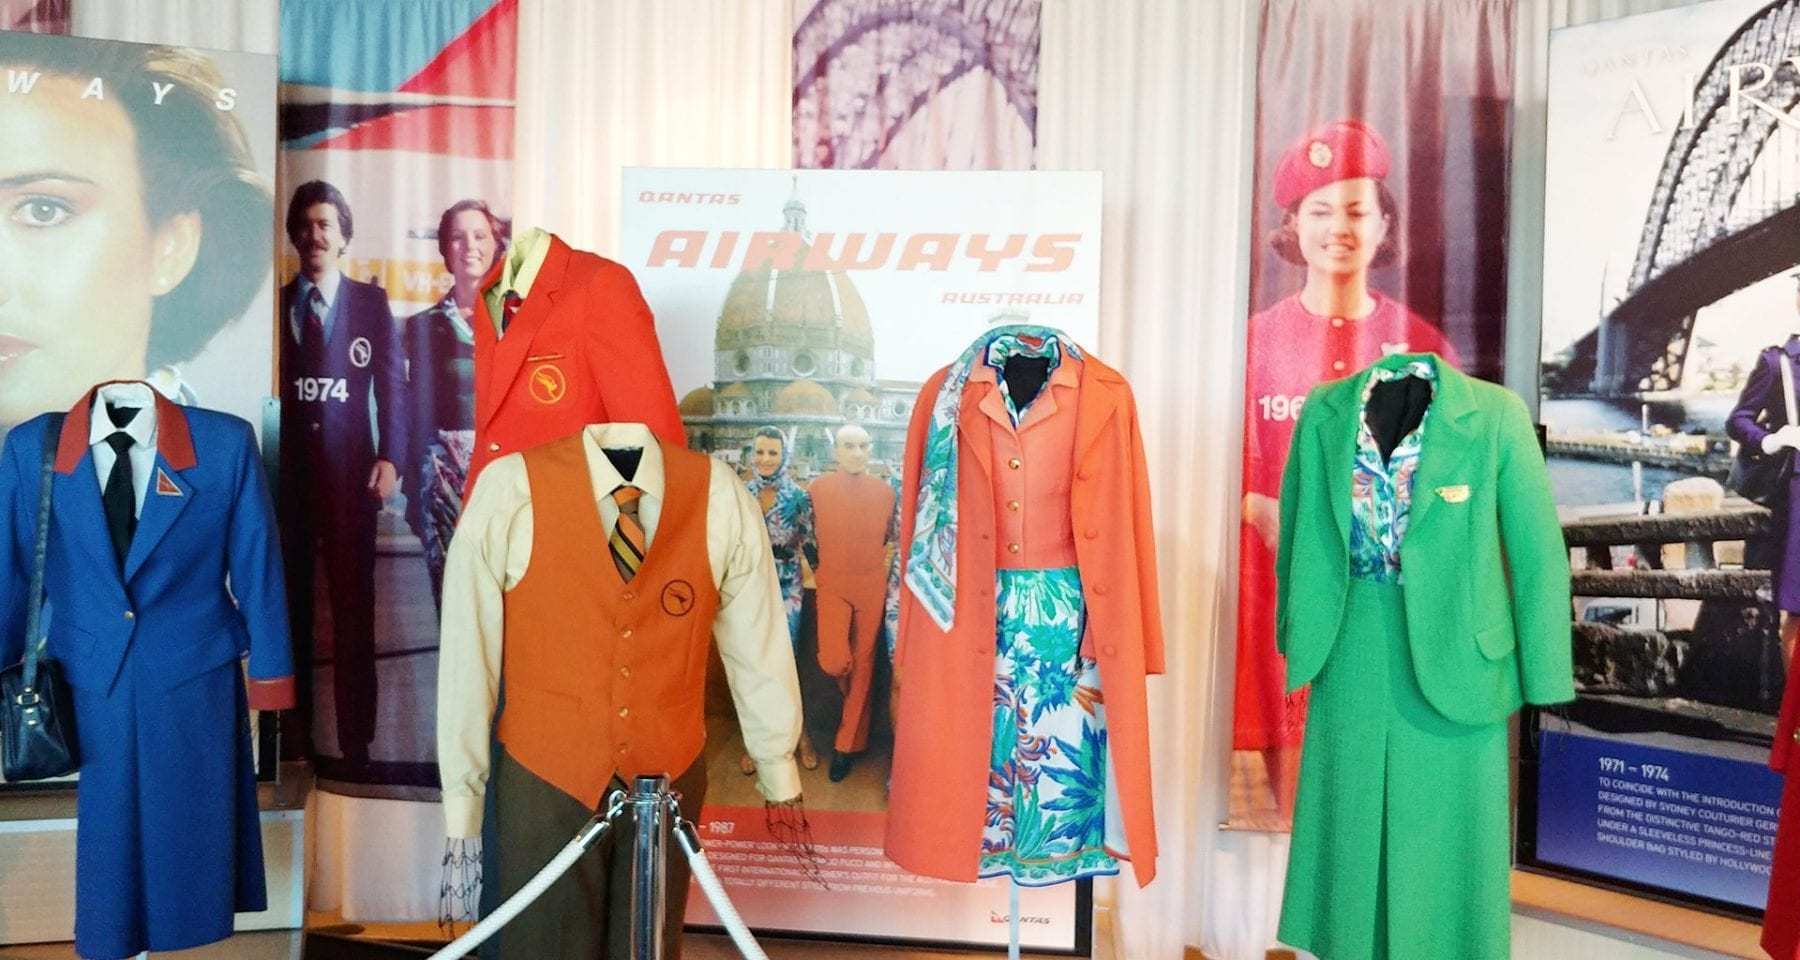 Qantas museum flight attendant uniforms from the past